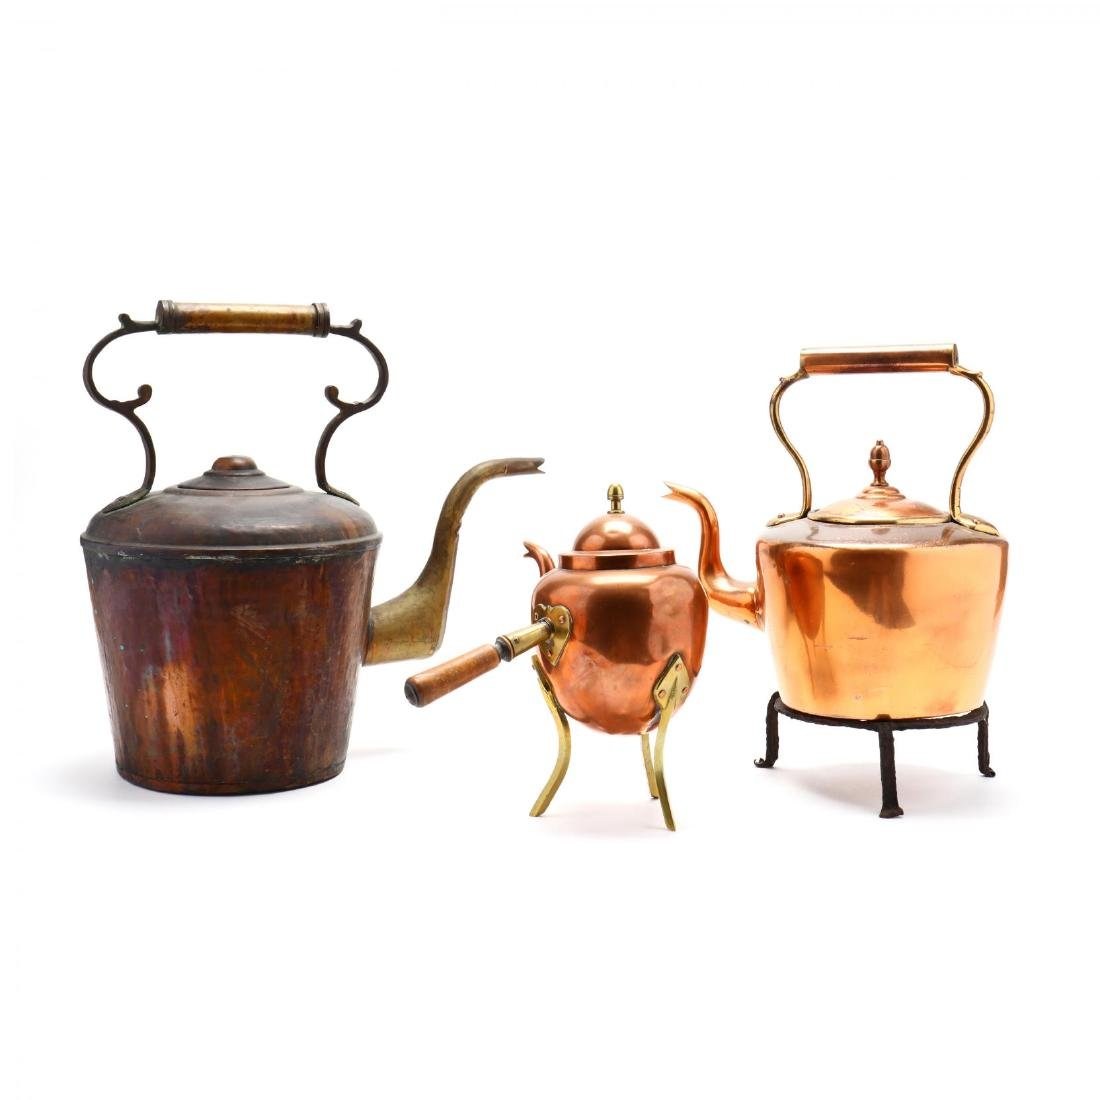 Three Vintage Copper Kettles - 2